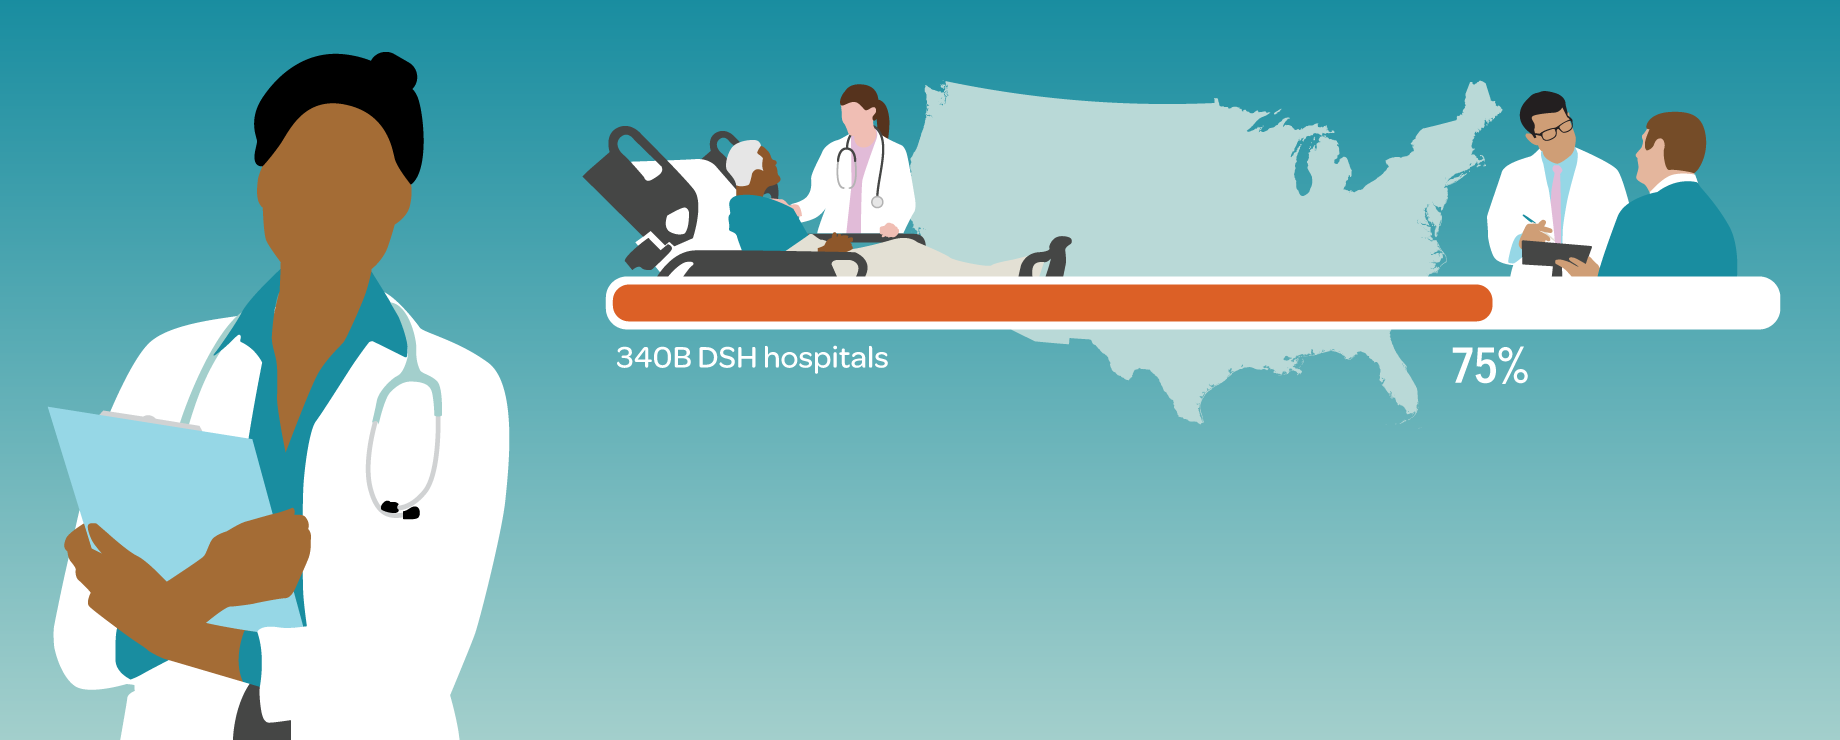 340B HOSPITALS SUPPORT MEDICAID AND OTHER LOW-INCOME PATIENTS